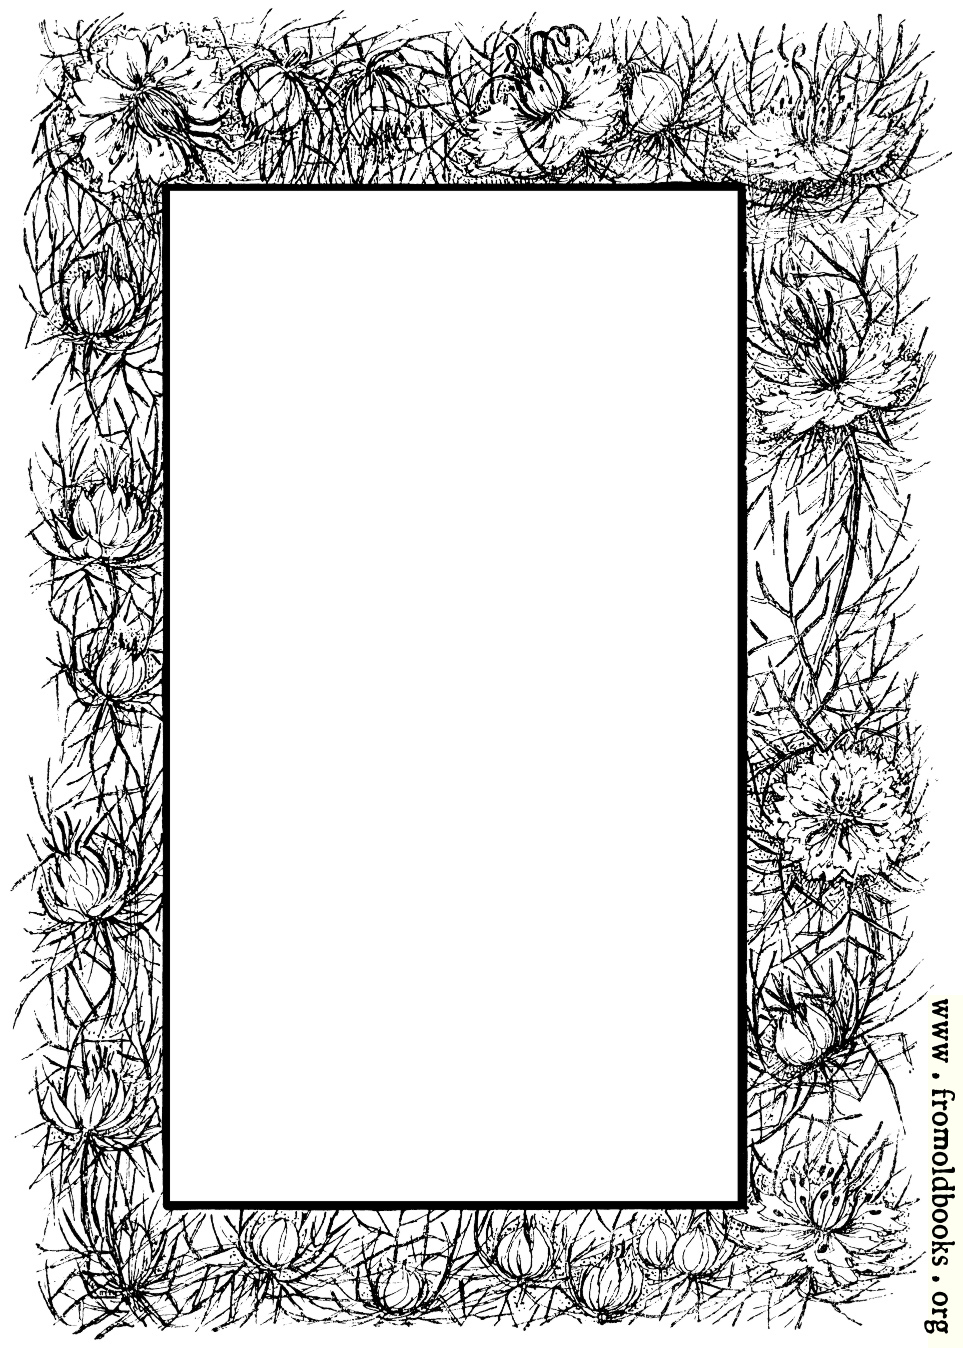 Border Of Flowers And Thorns